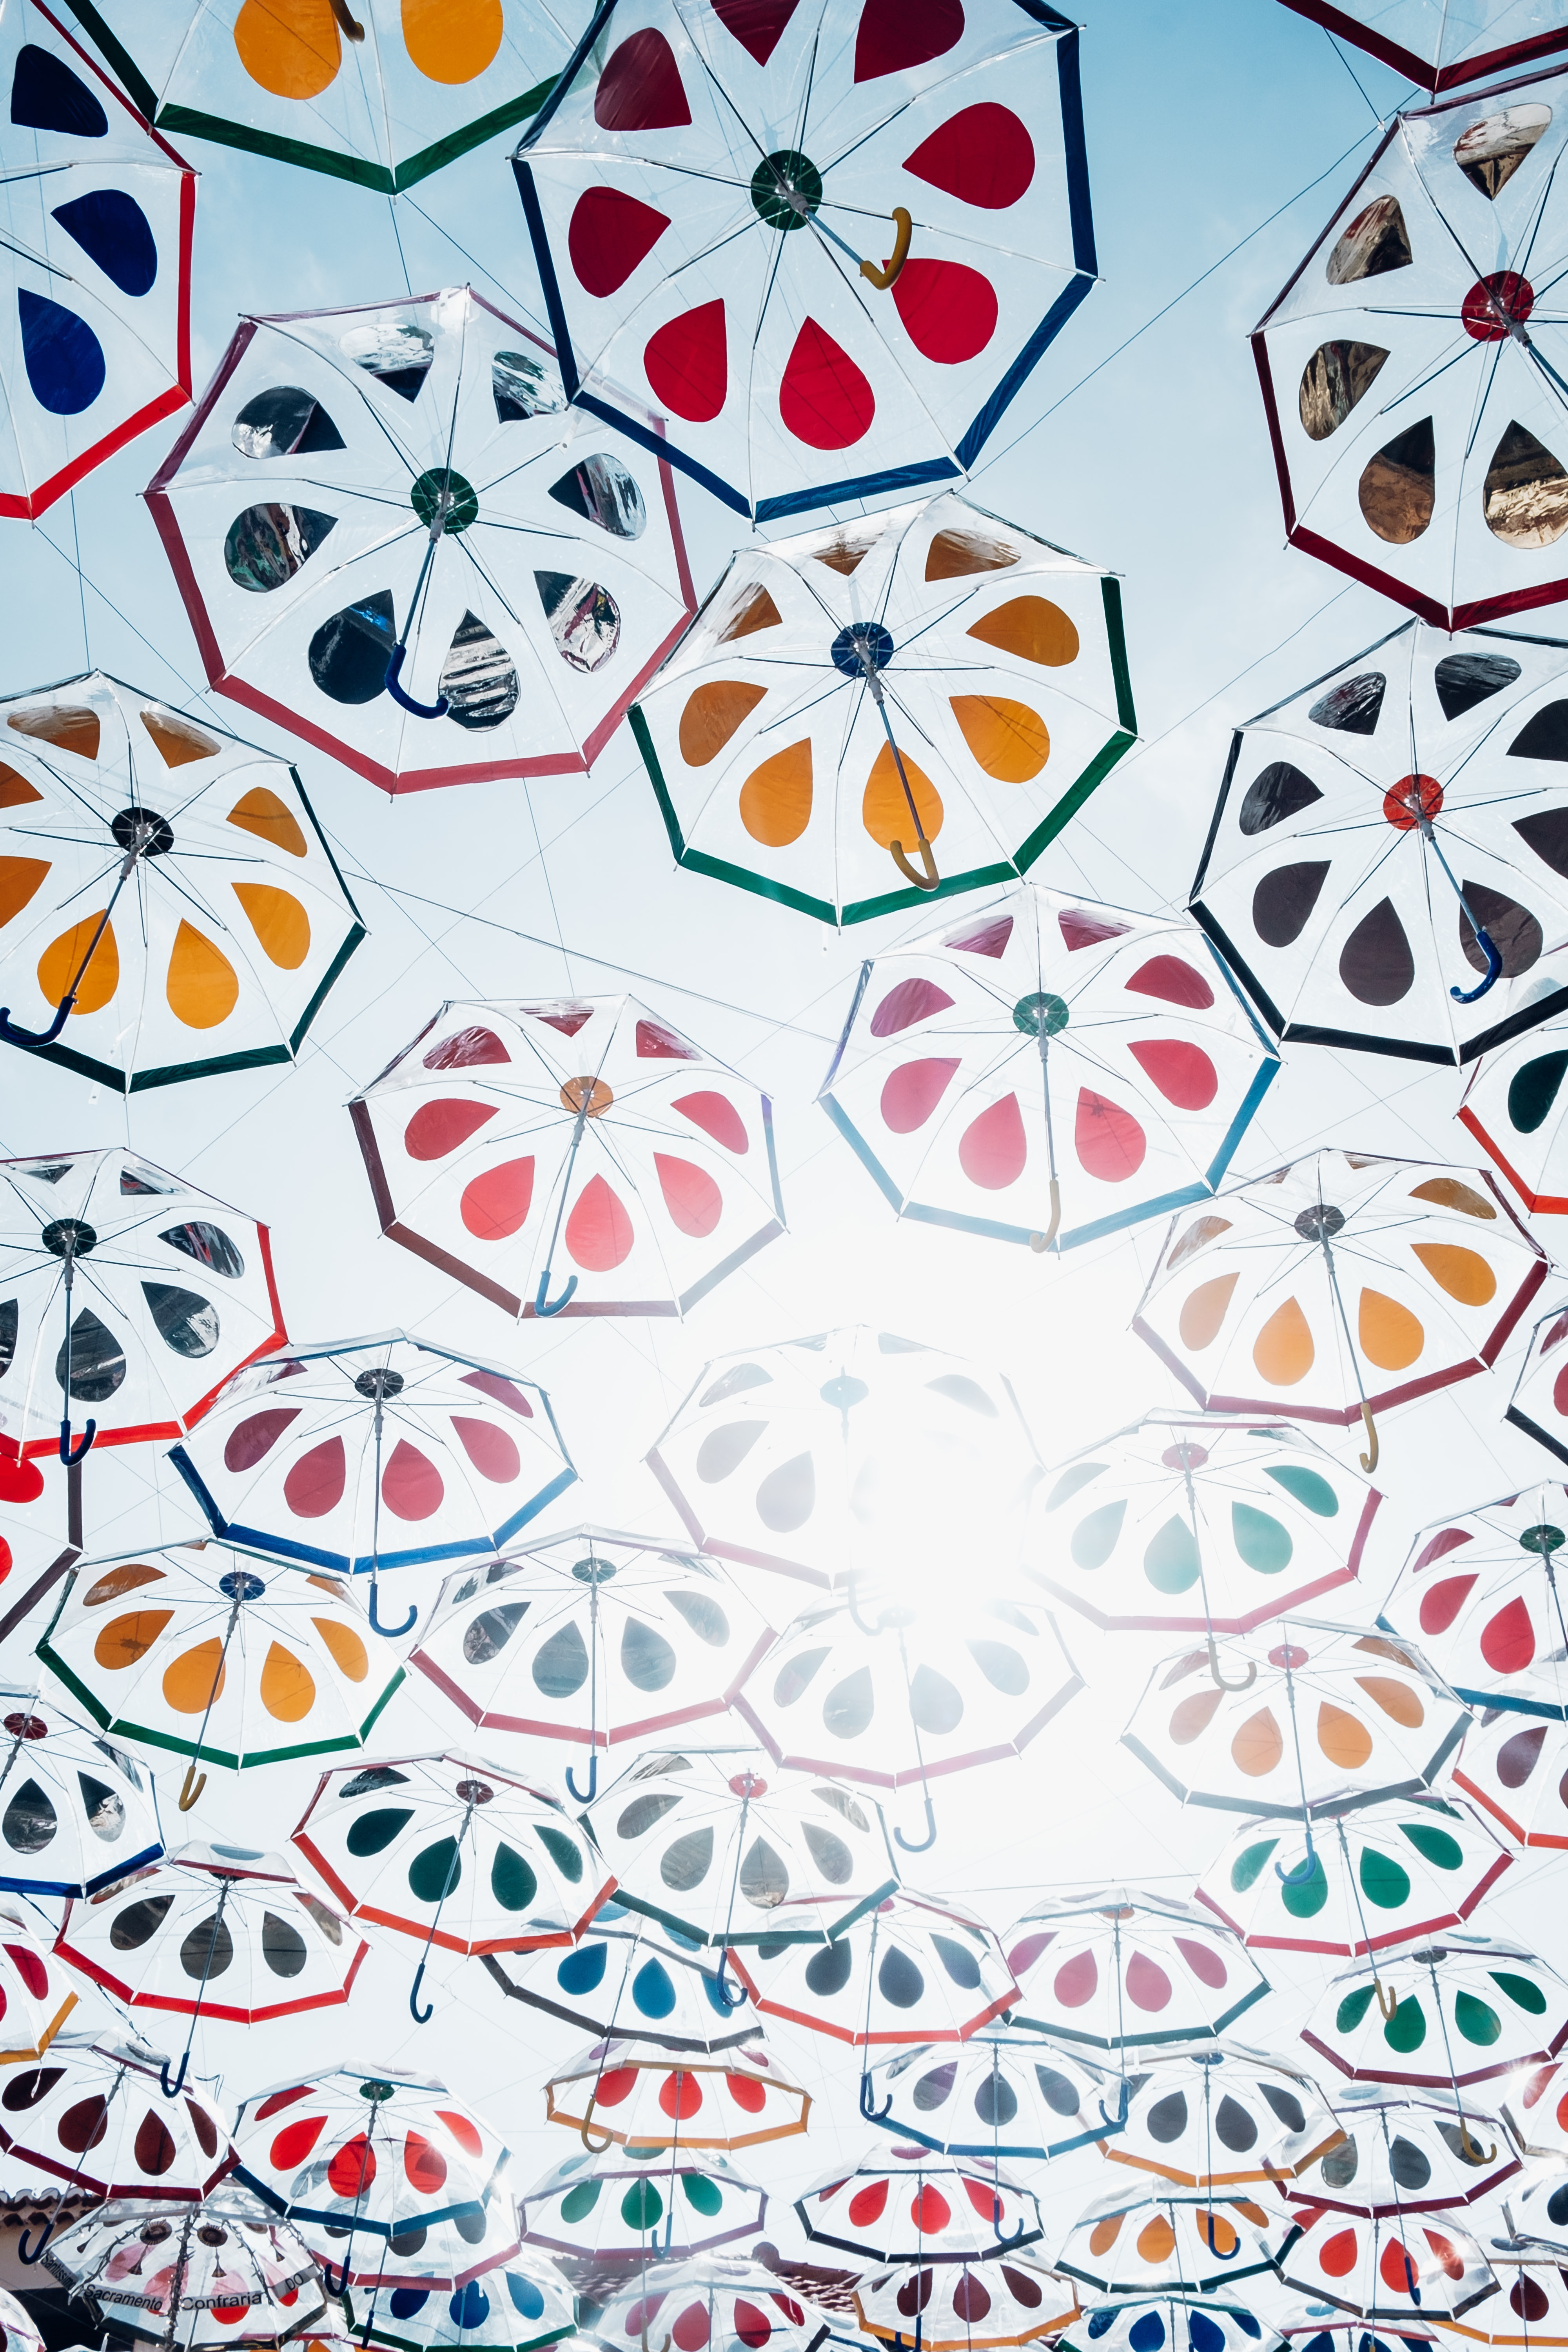 worm eye view of assorted-color of umbrella